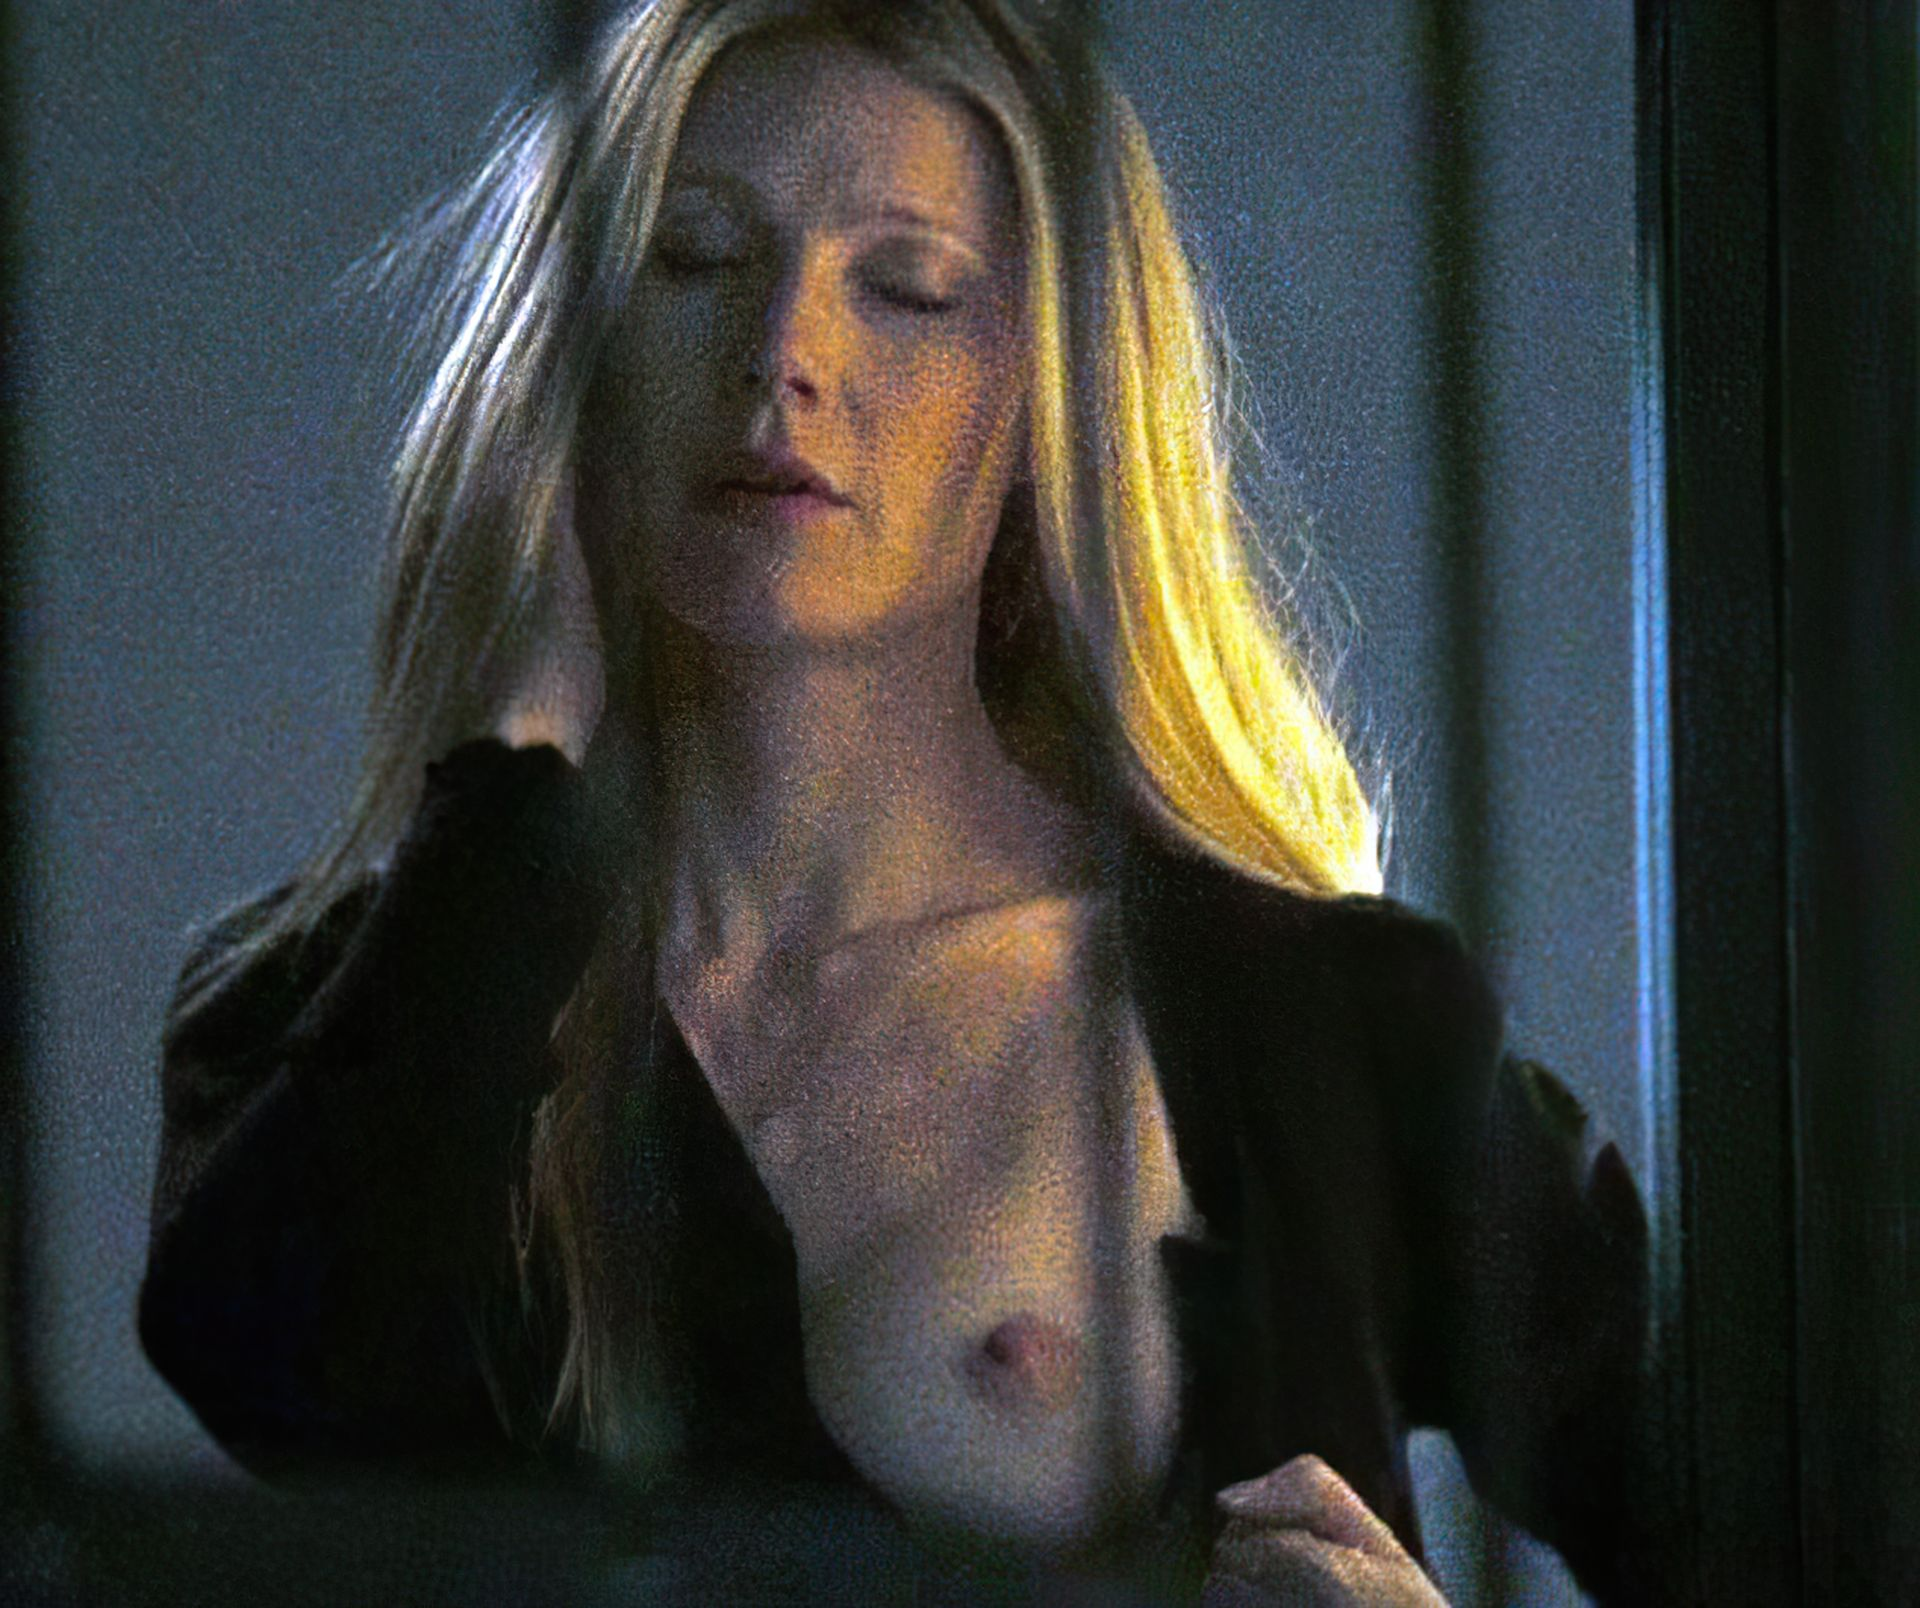 Gwyneth paltrow nude makes us incredibly frustrated